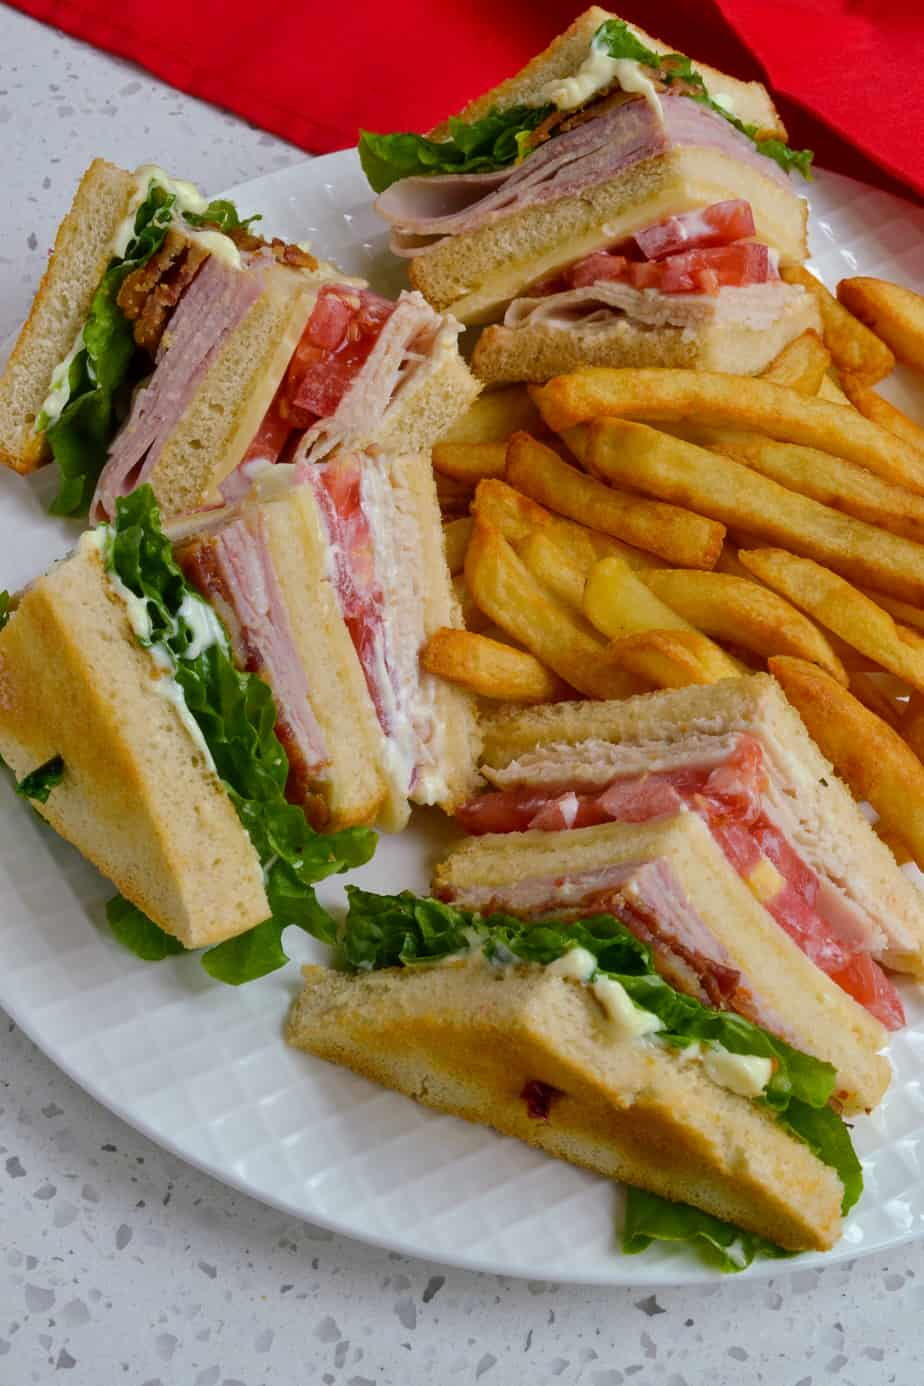 A classic club sandwich served with French fries.